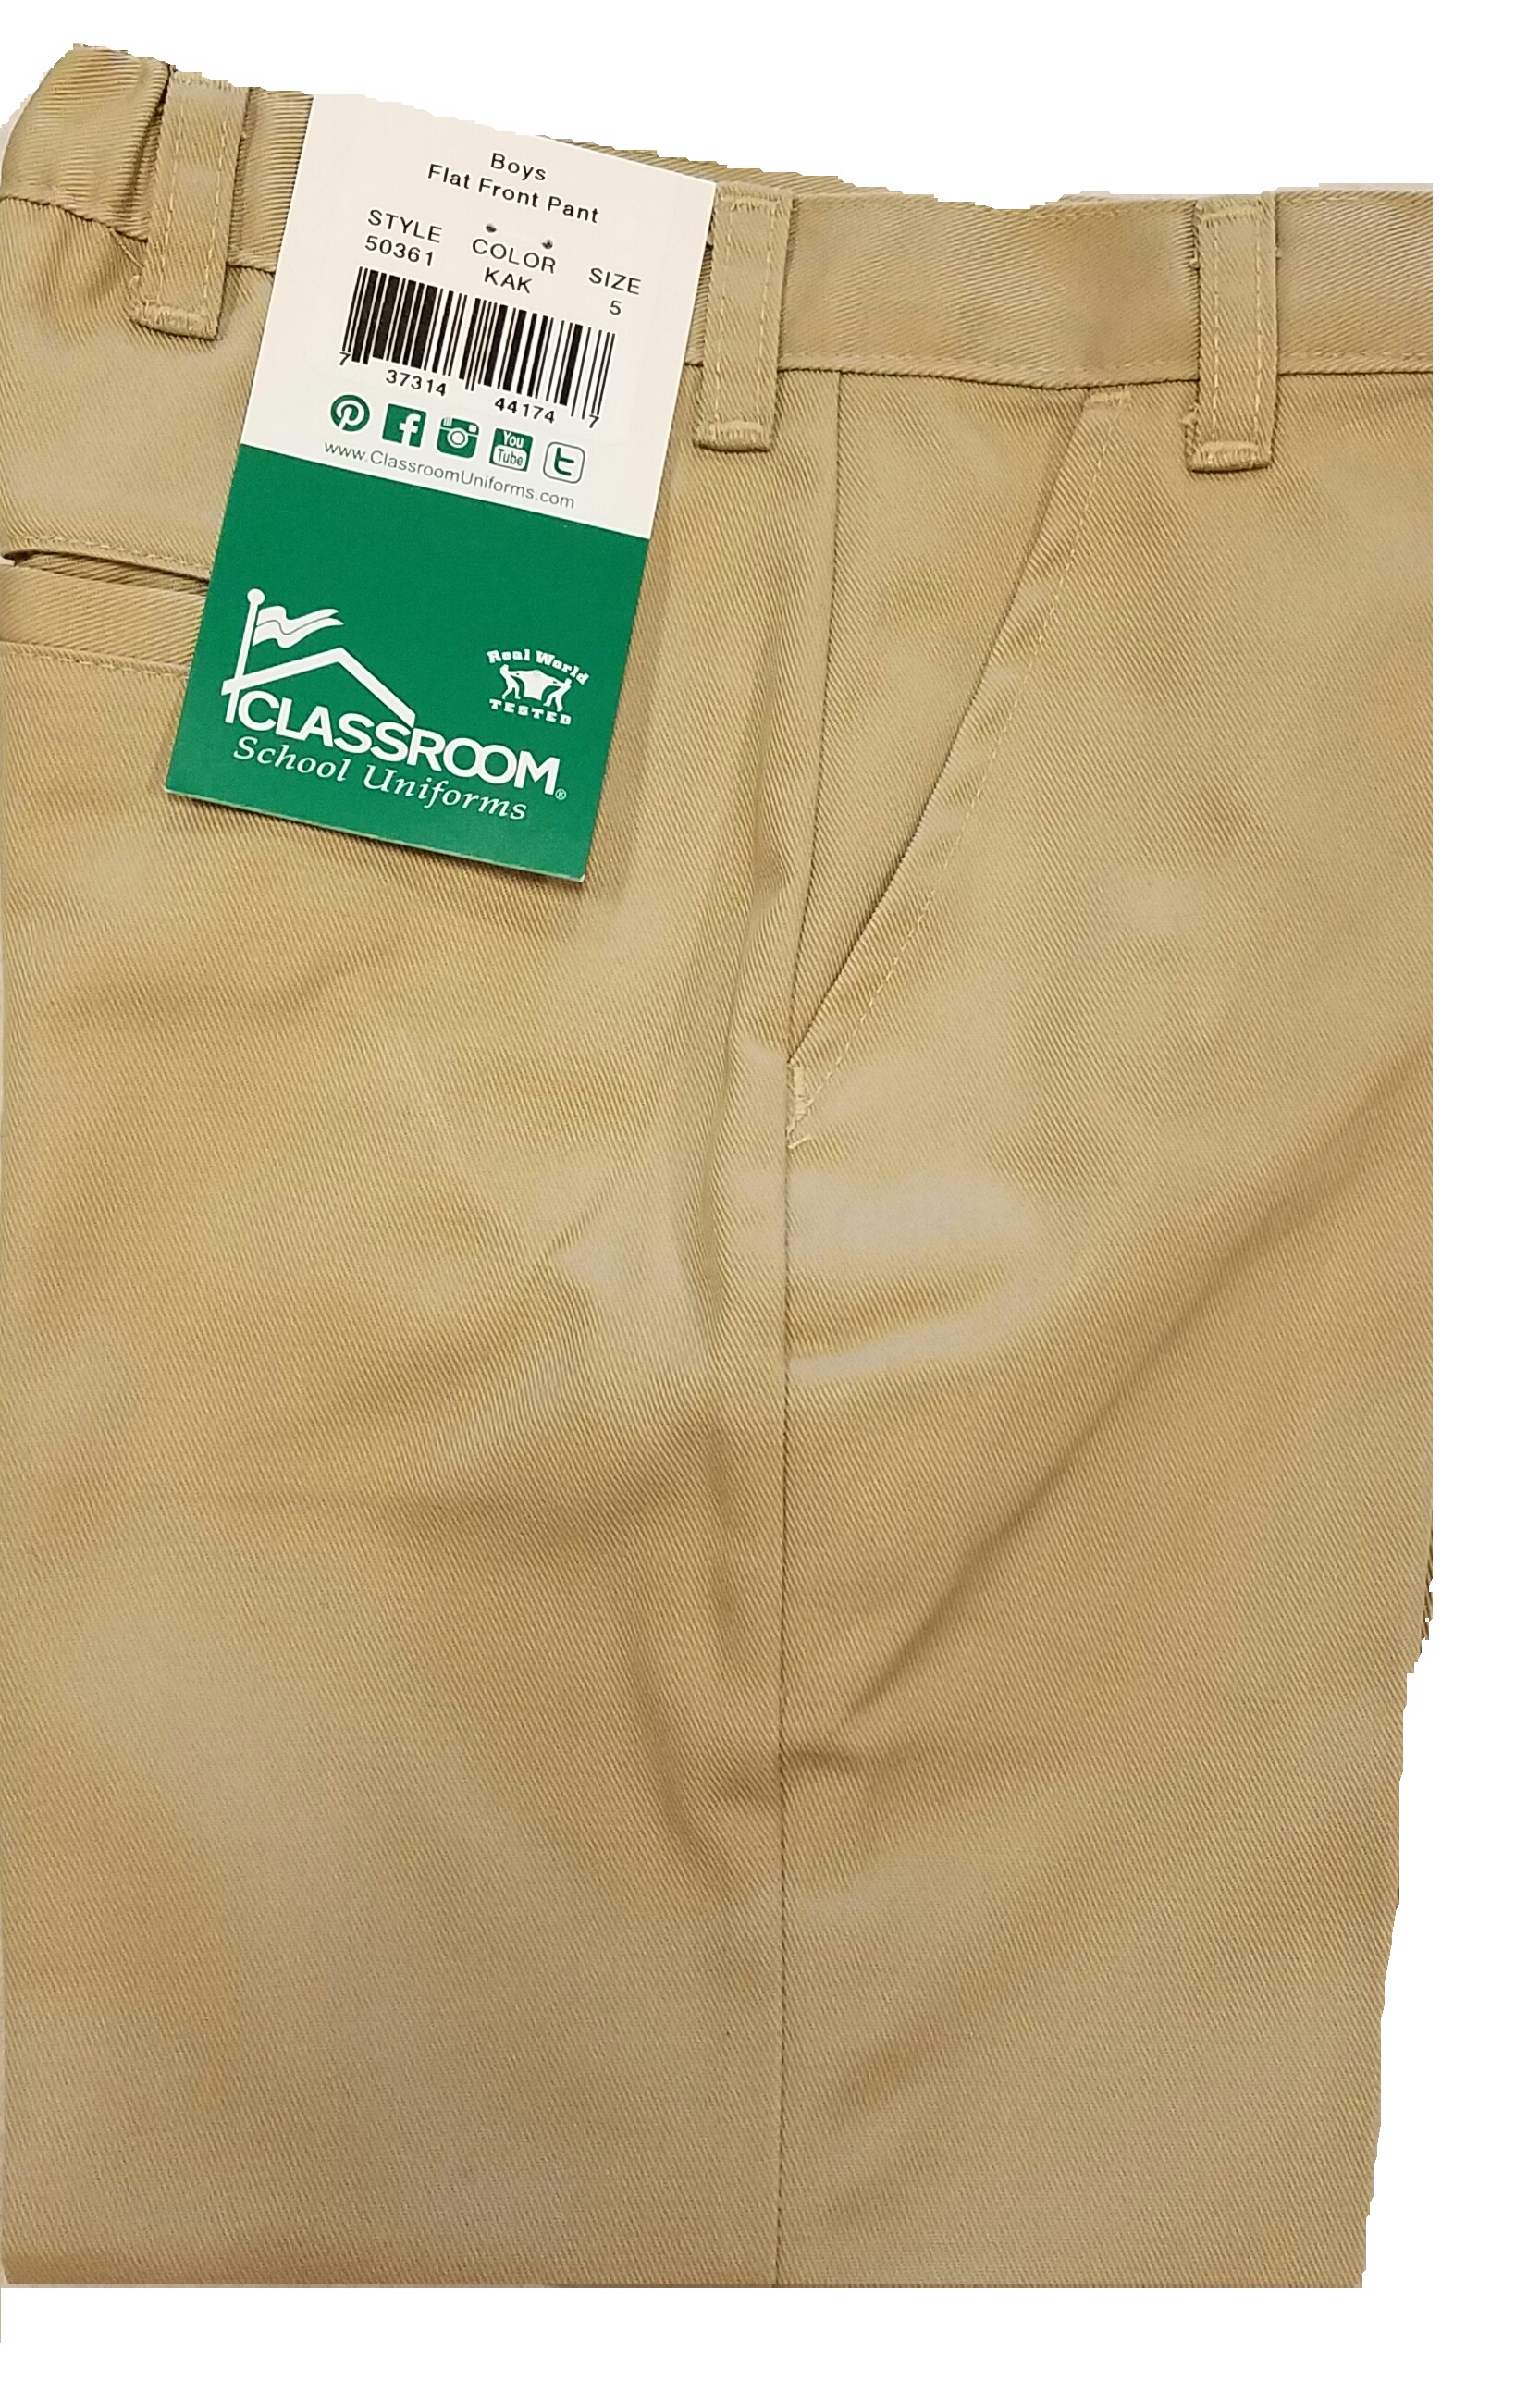 Style 50361A Toddler (4-7) Khaki Long Pant